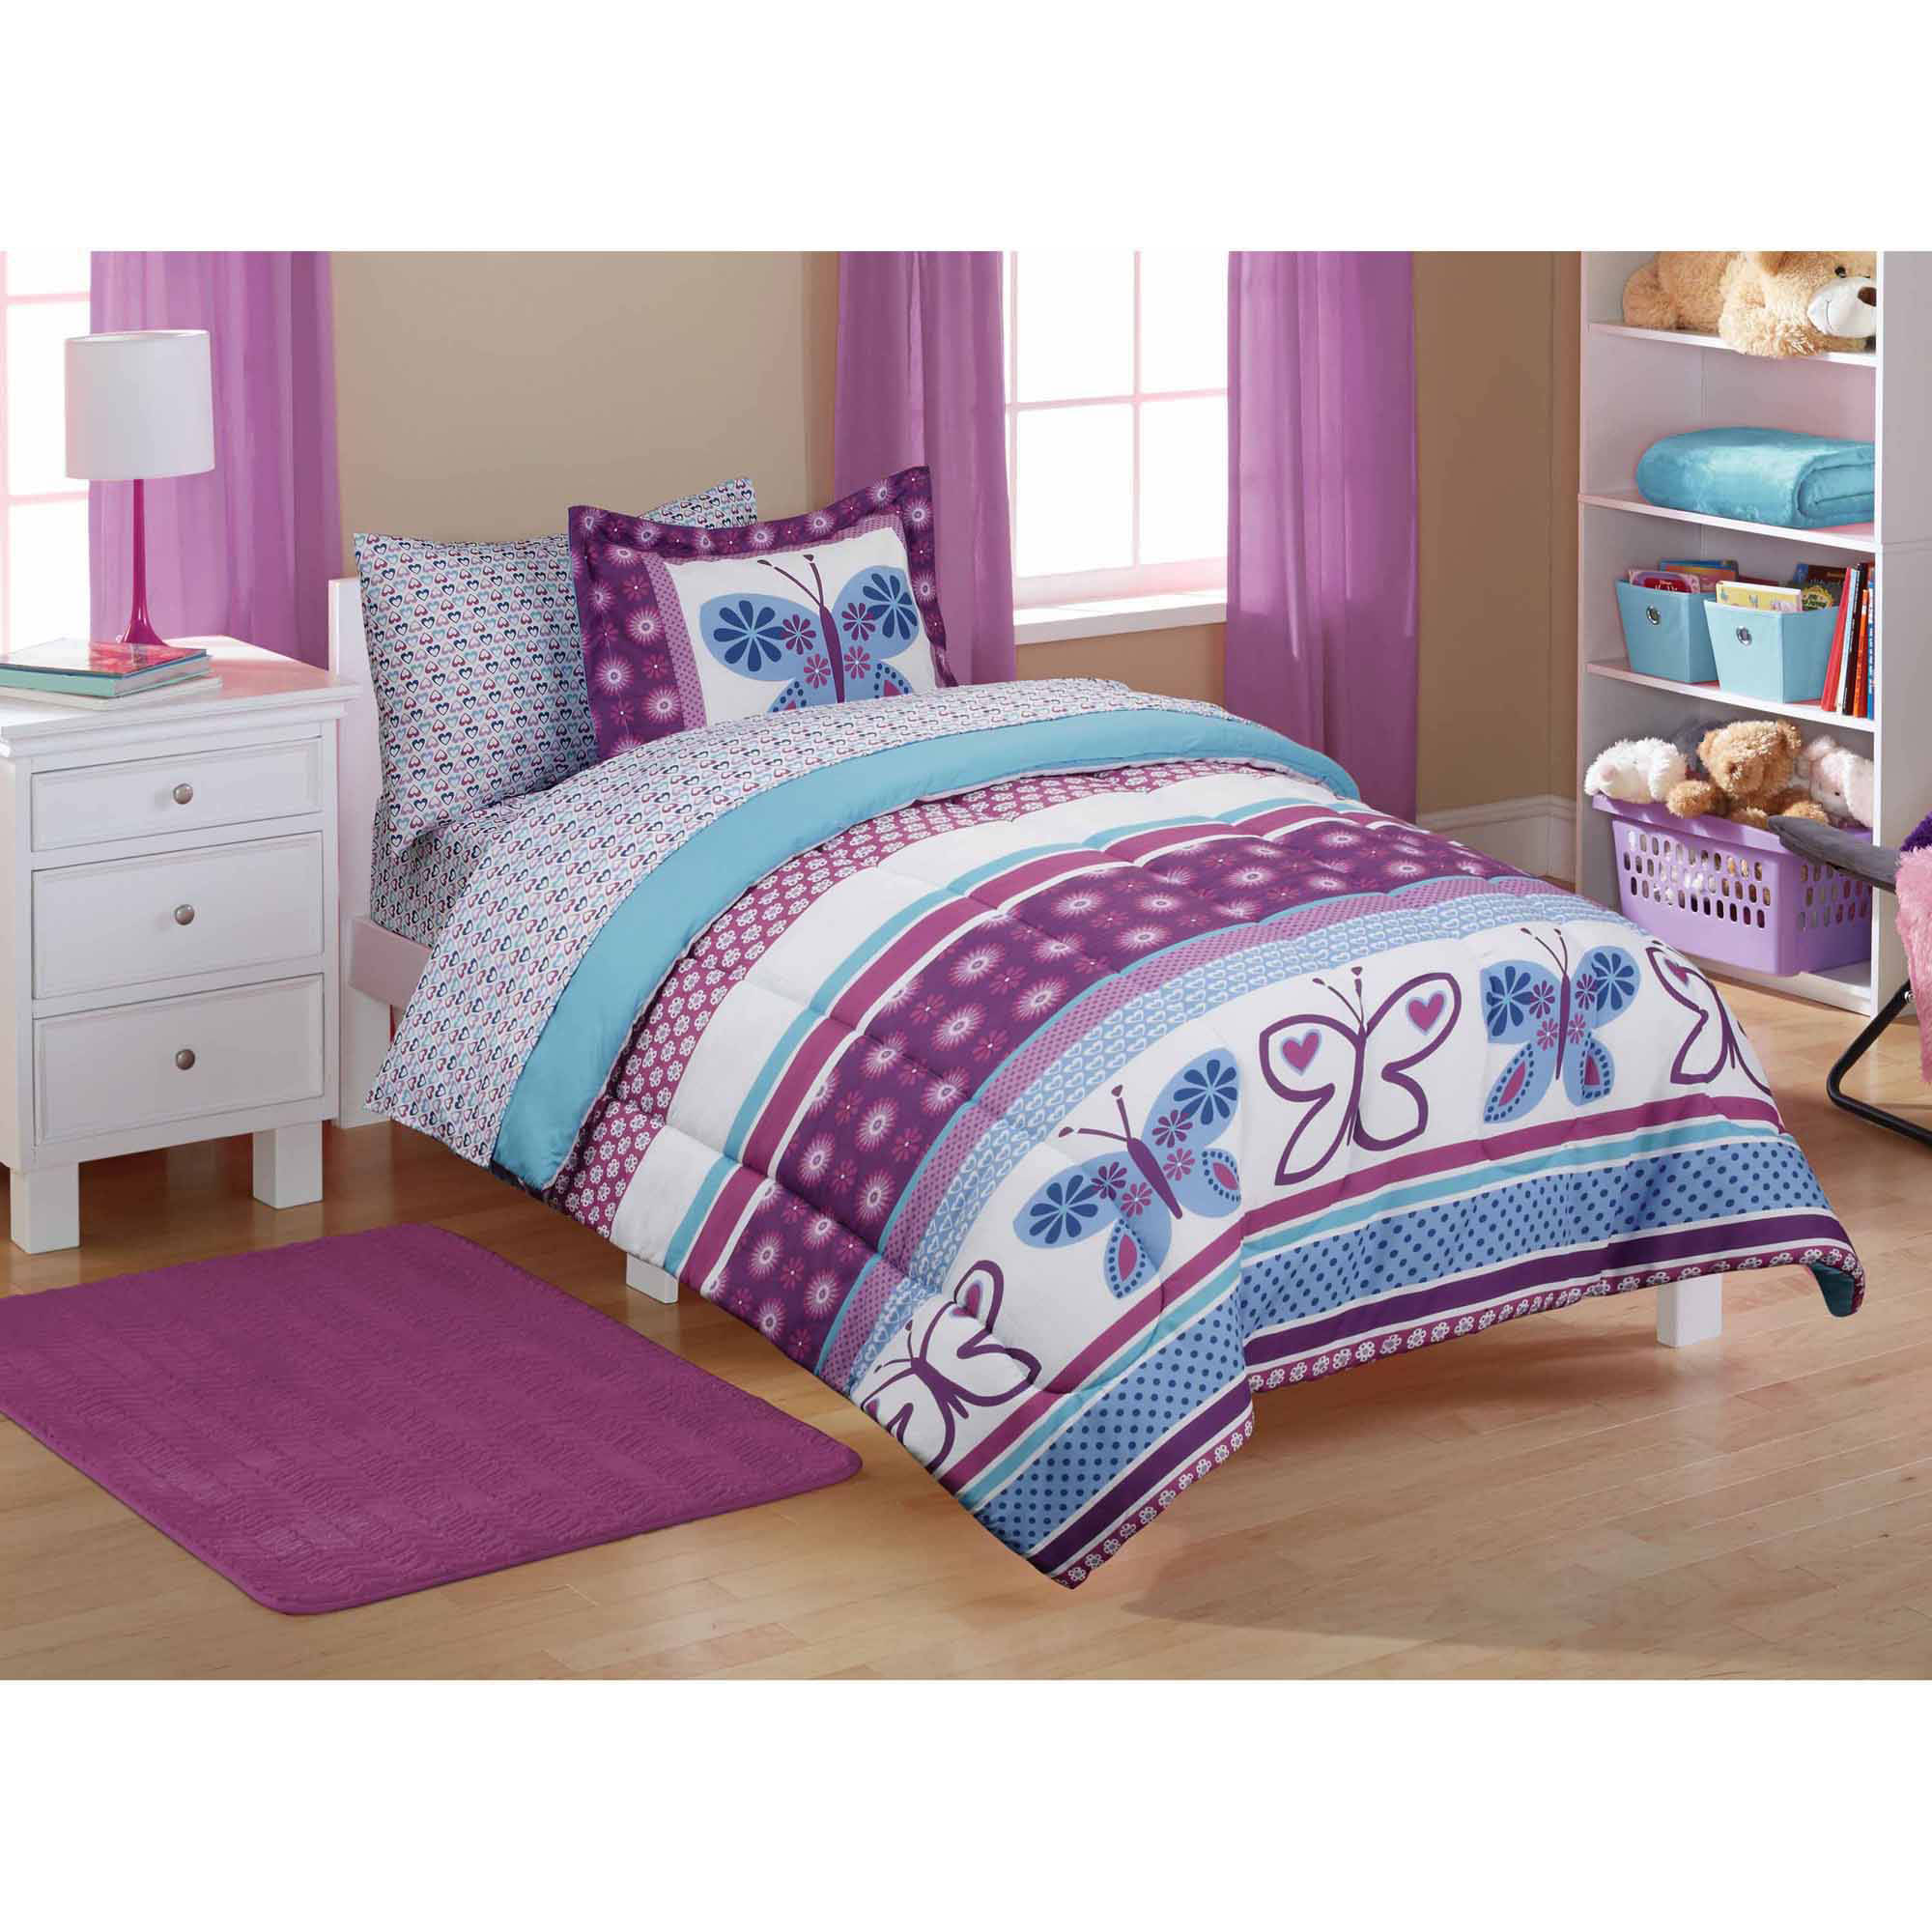 Bedding sets for teenage girls walmart - Mainstays Kids Purple Butterfly Coordinated Bed In A Bag